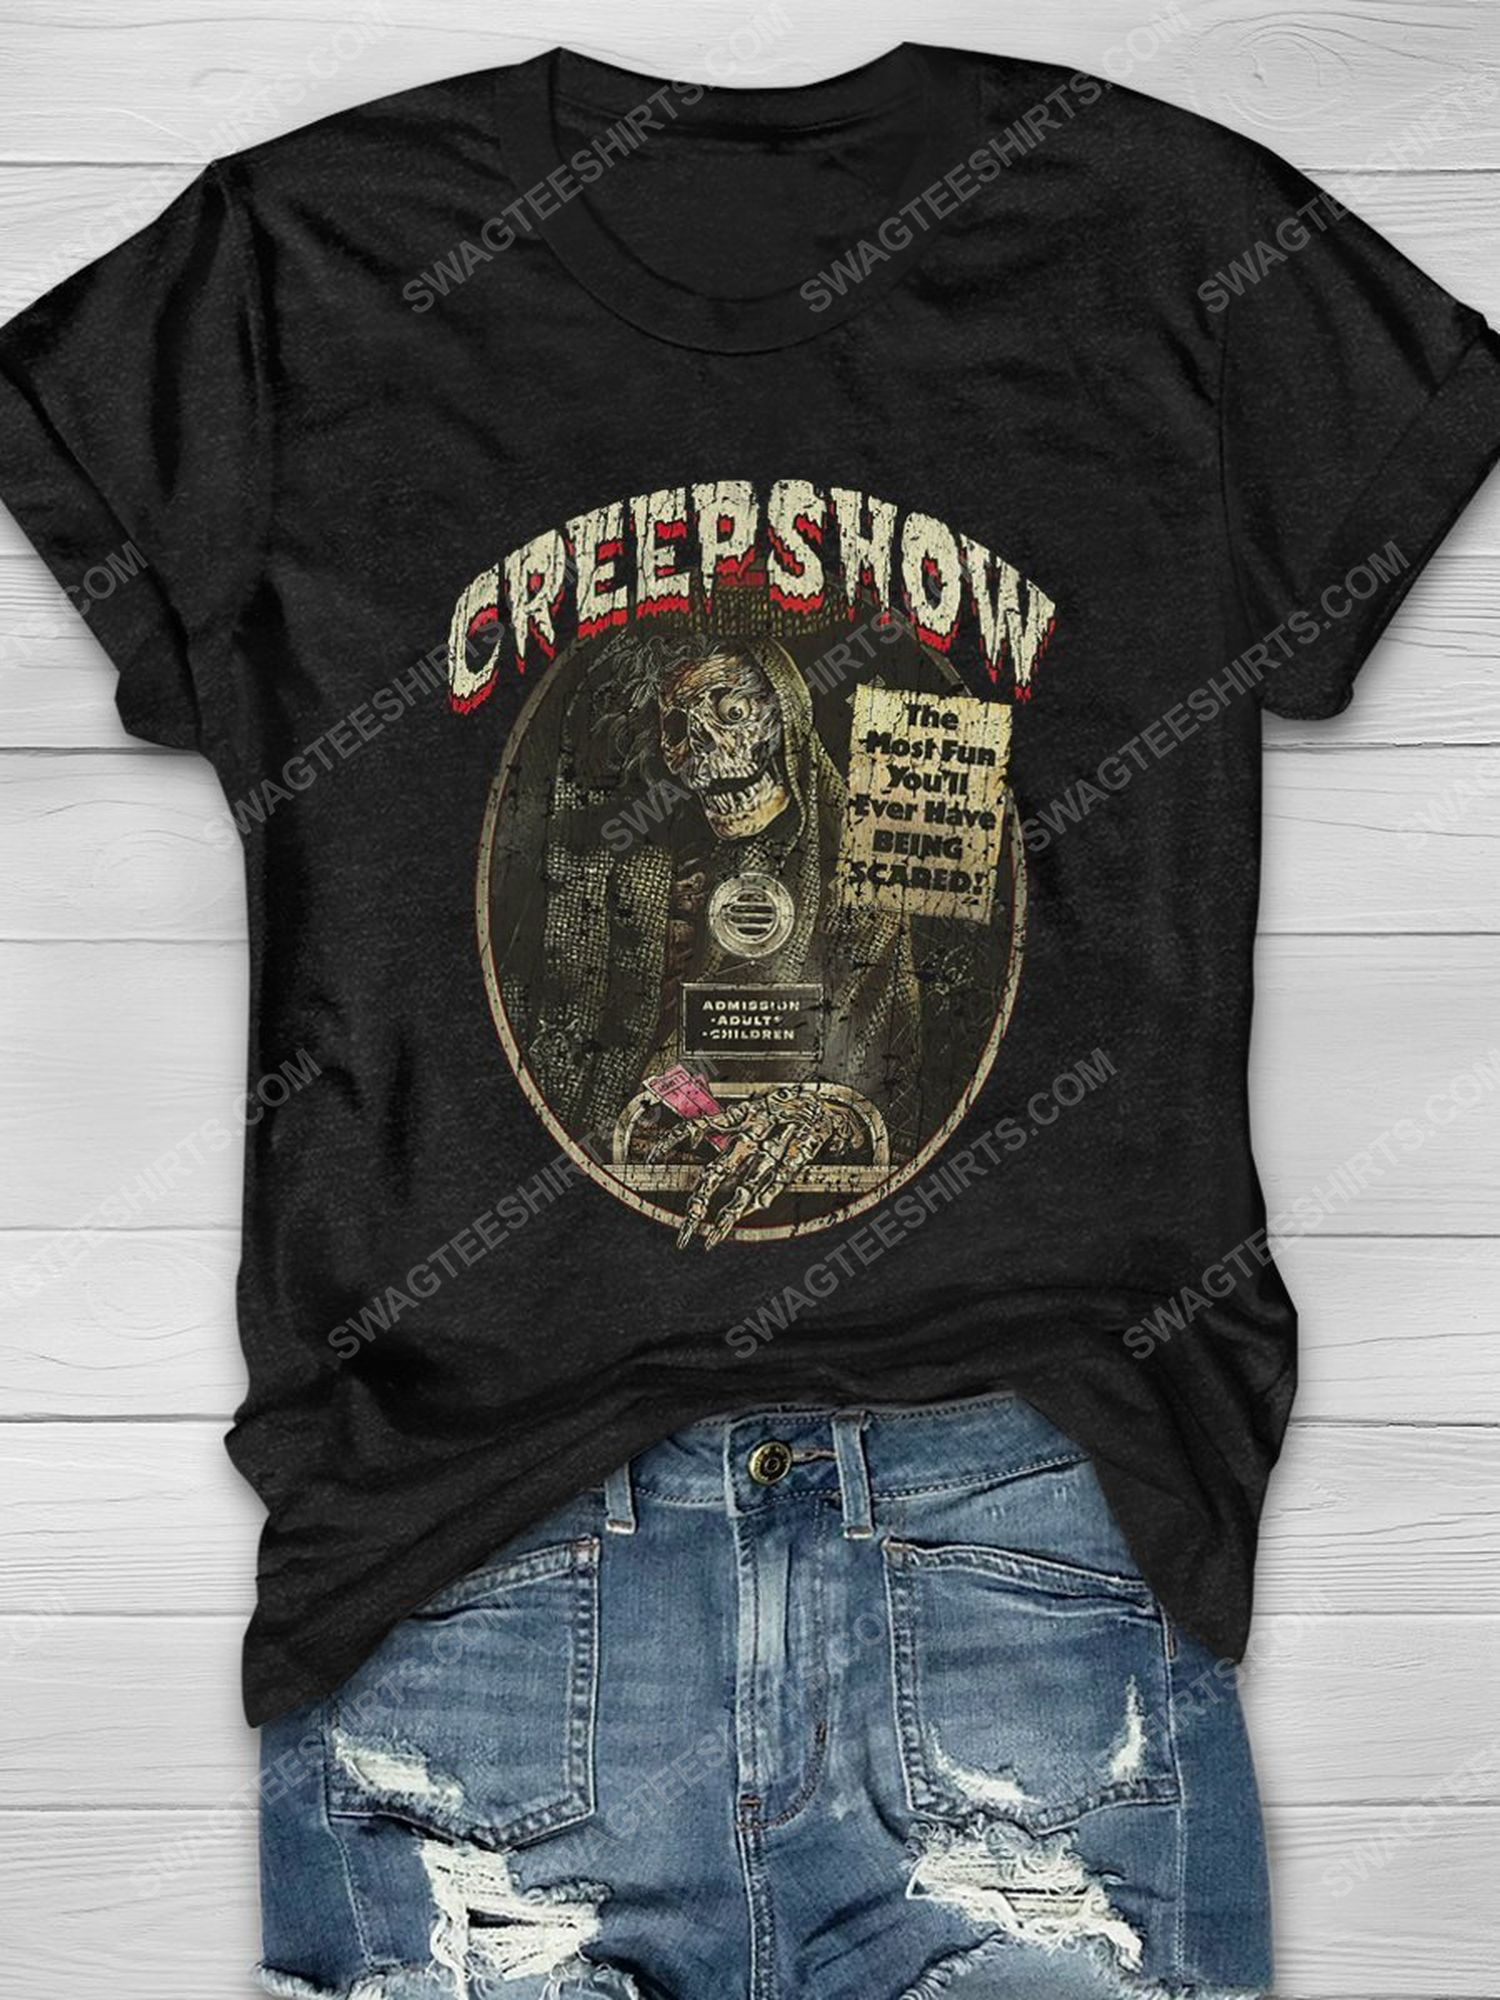 Halloween creepshow the most fun you'll ever have being scared shirt 1